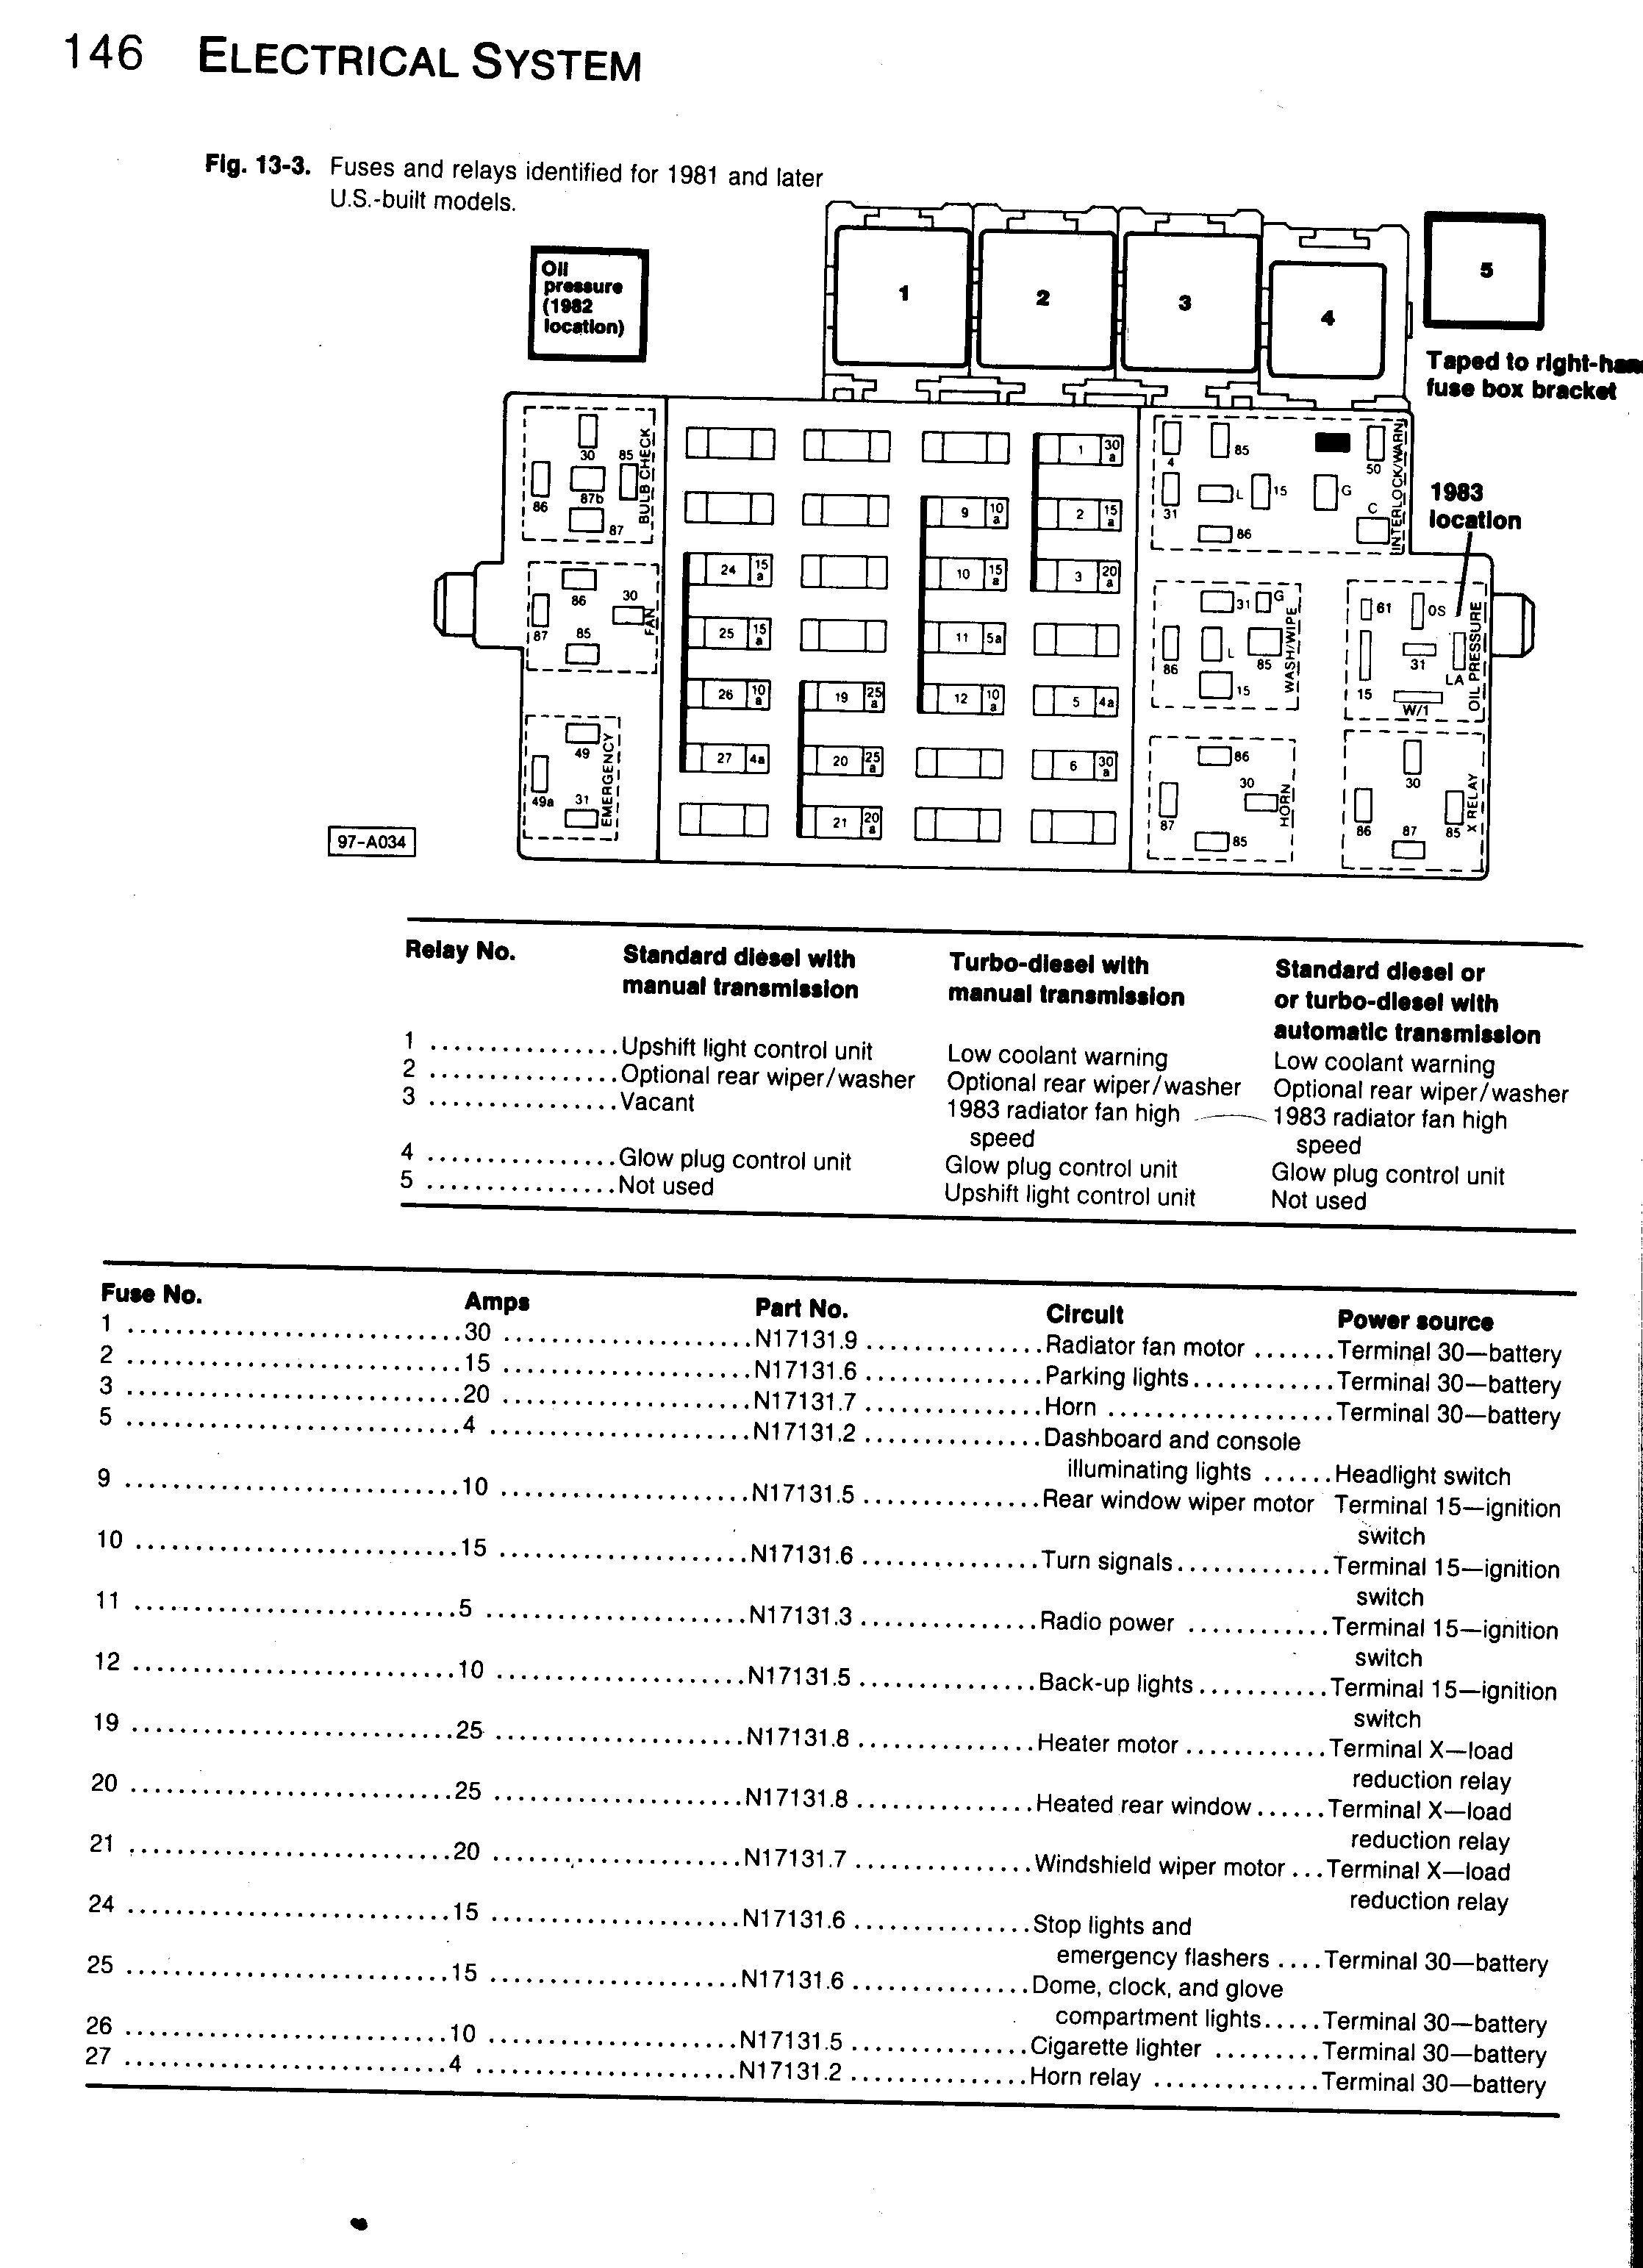 2004 bu fuse diagram center wiring library 2004 bu fuse diagram center